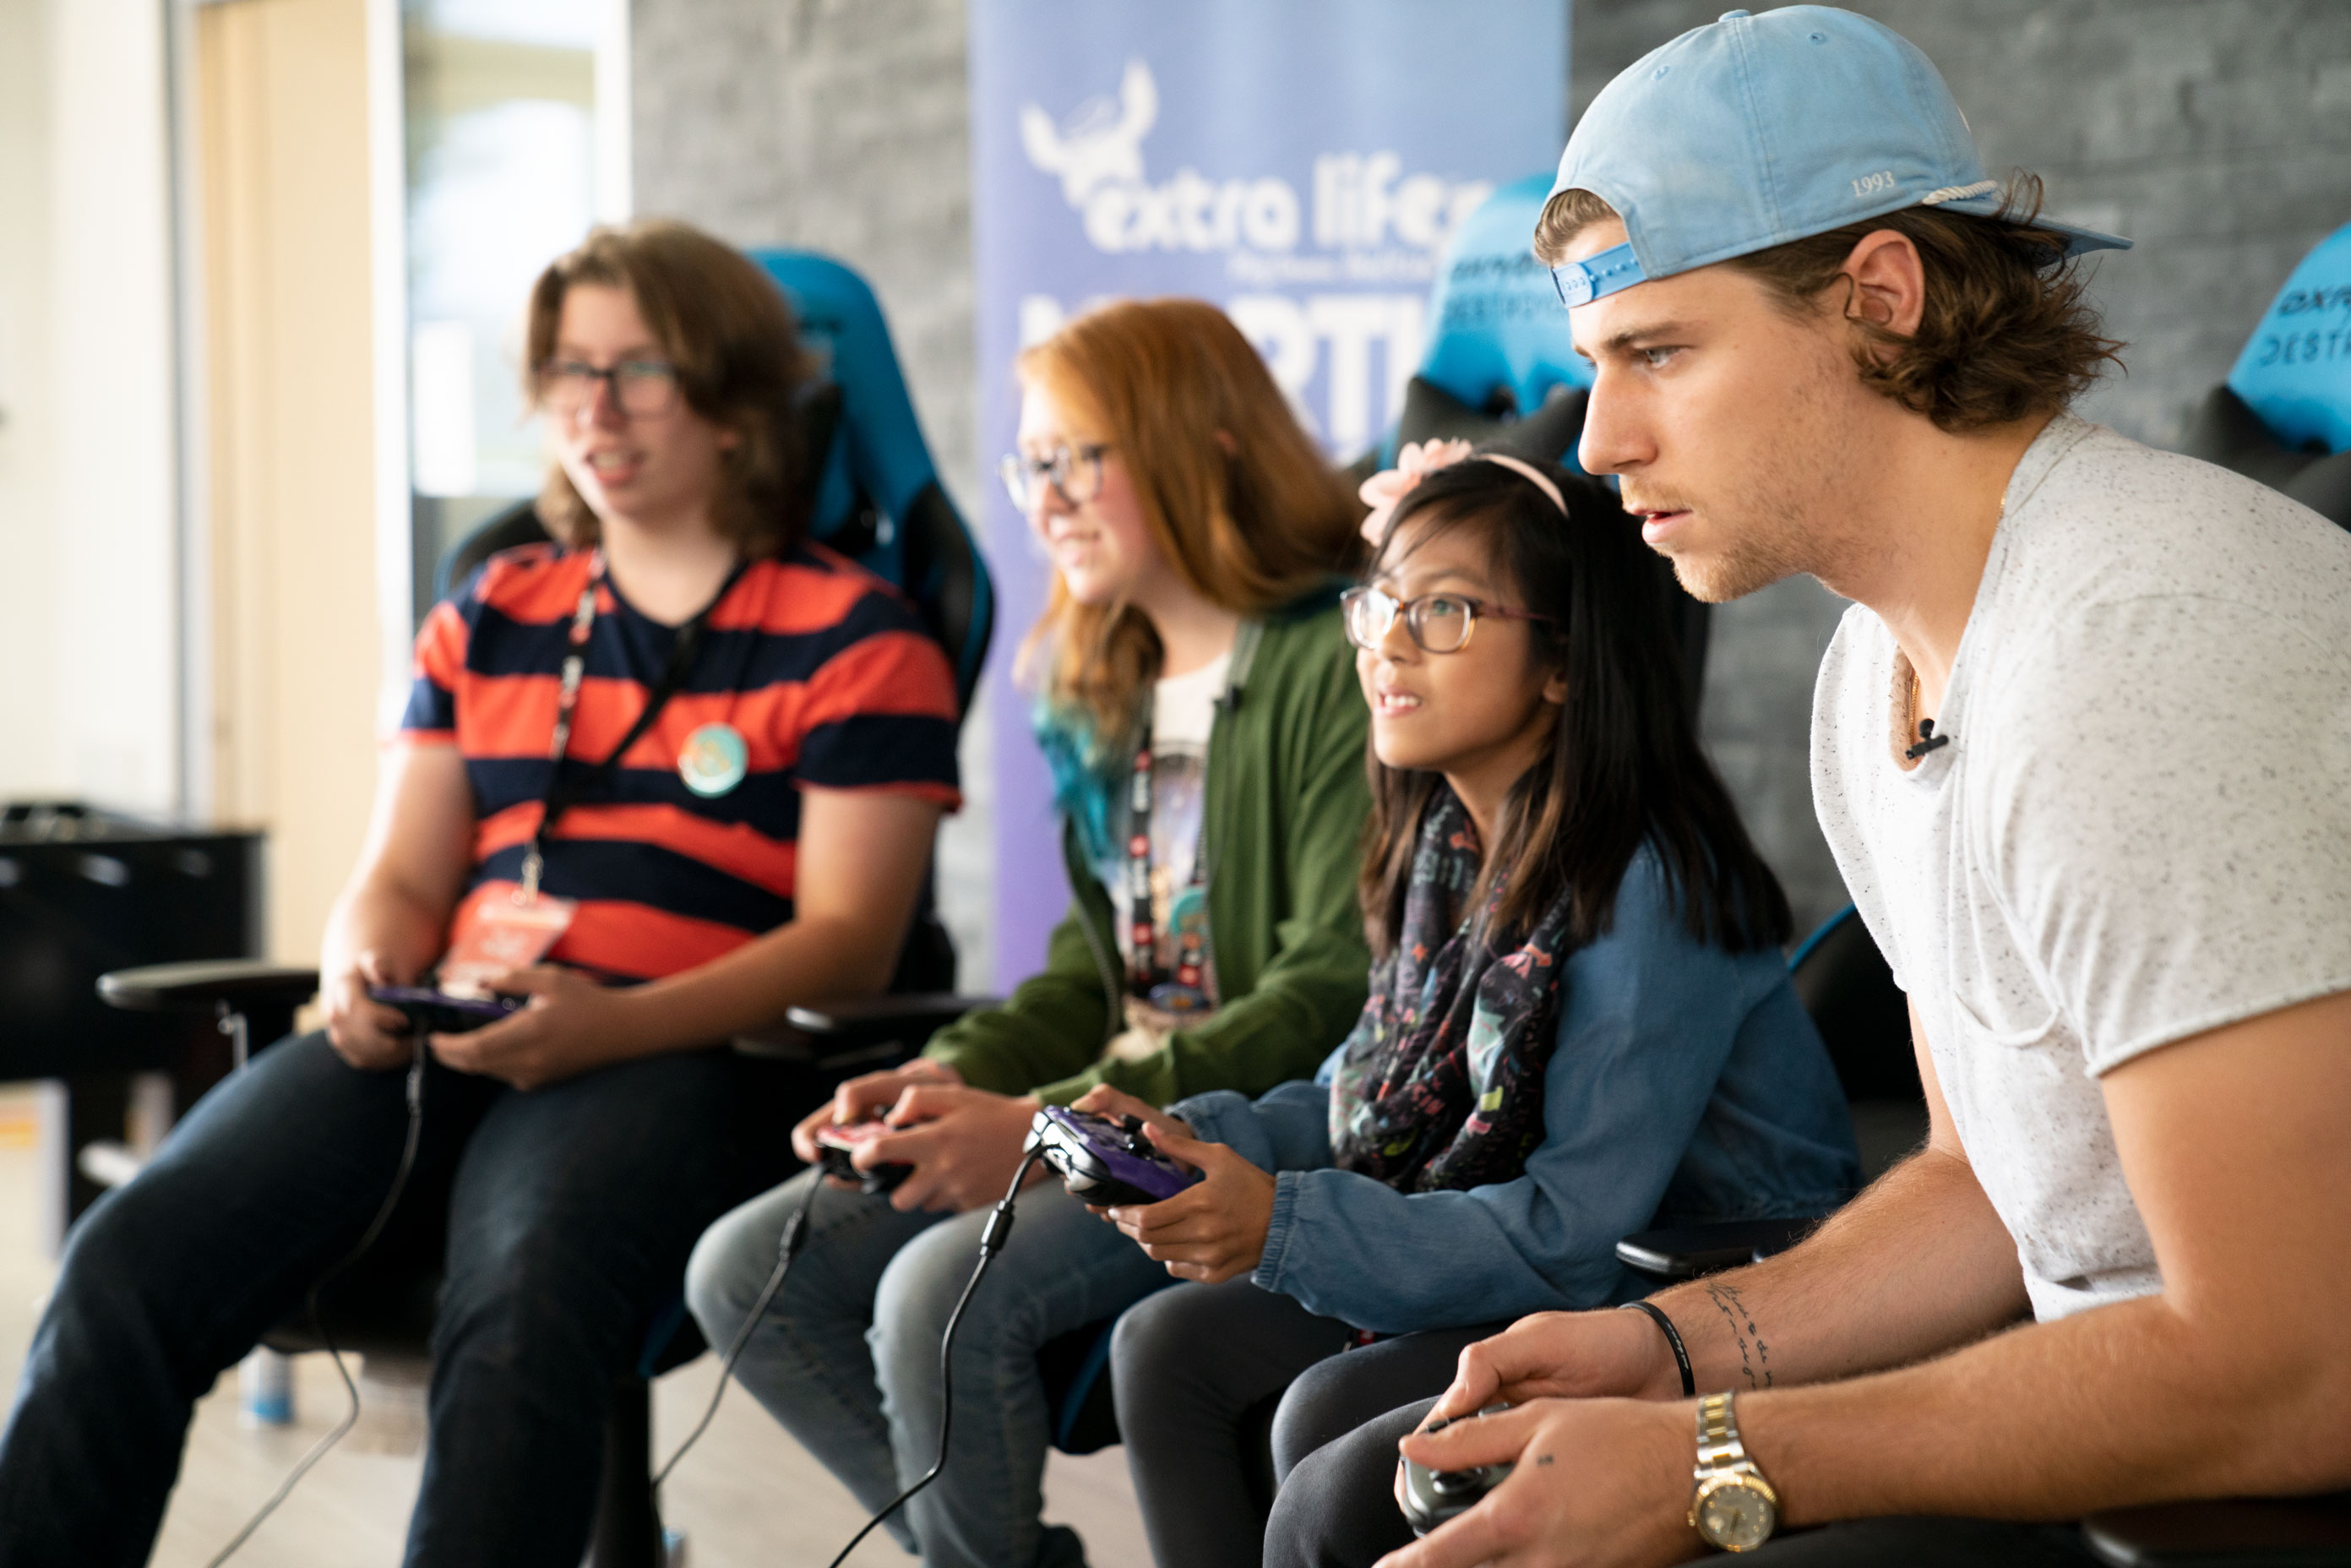 Children playing video games with Winnipeg Jets' player, Nate Beaulieu